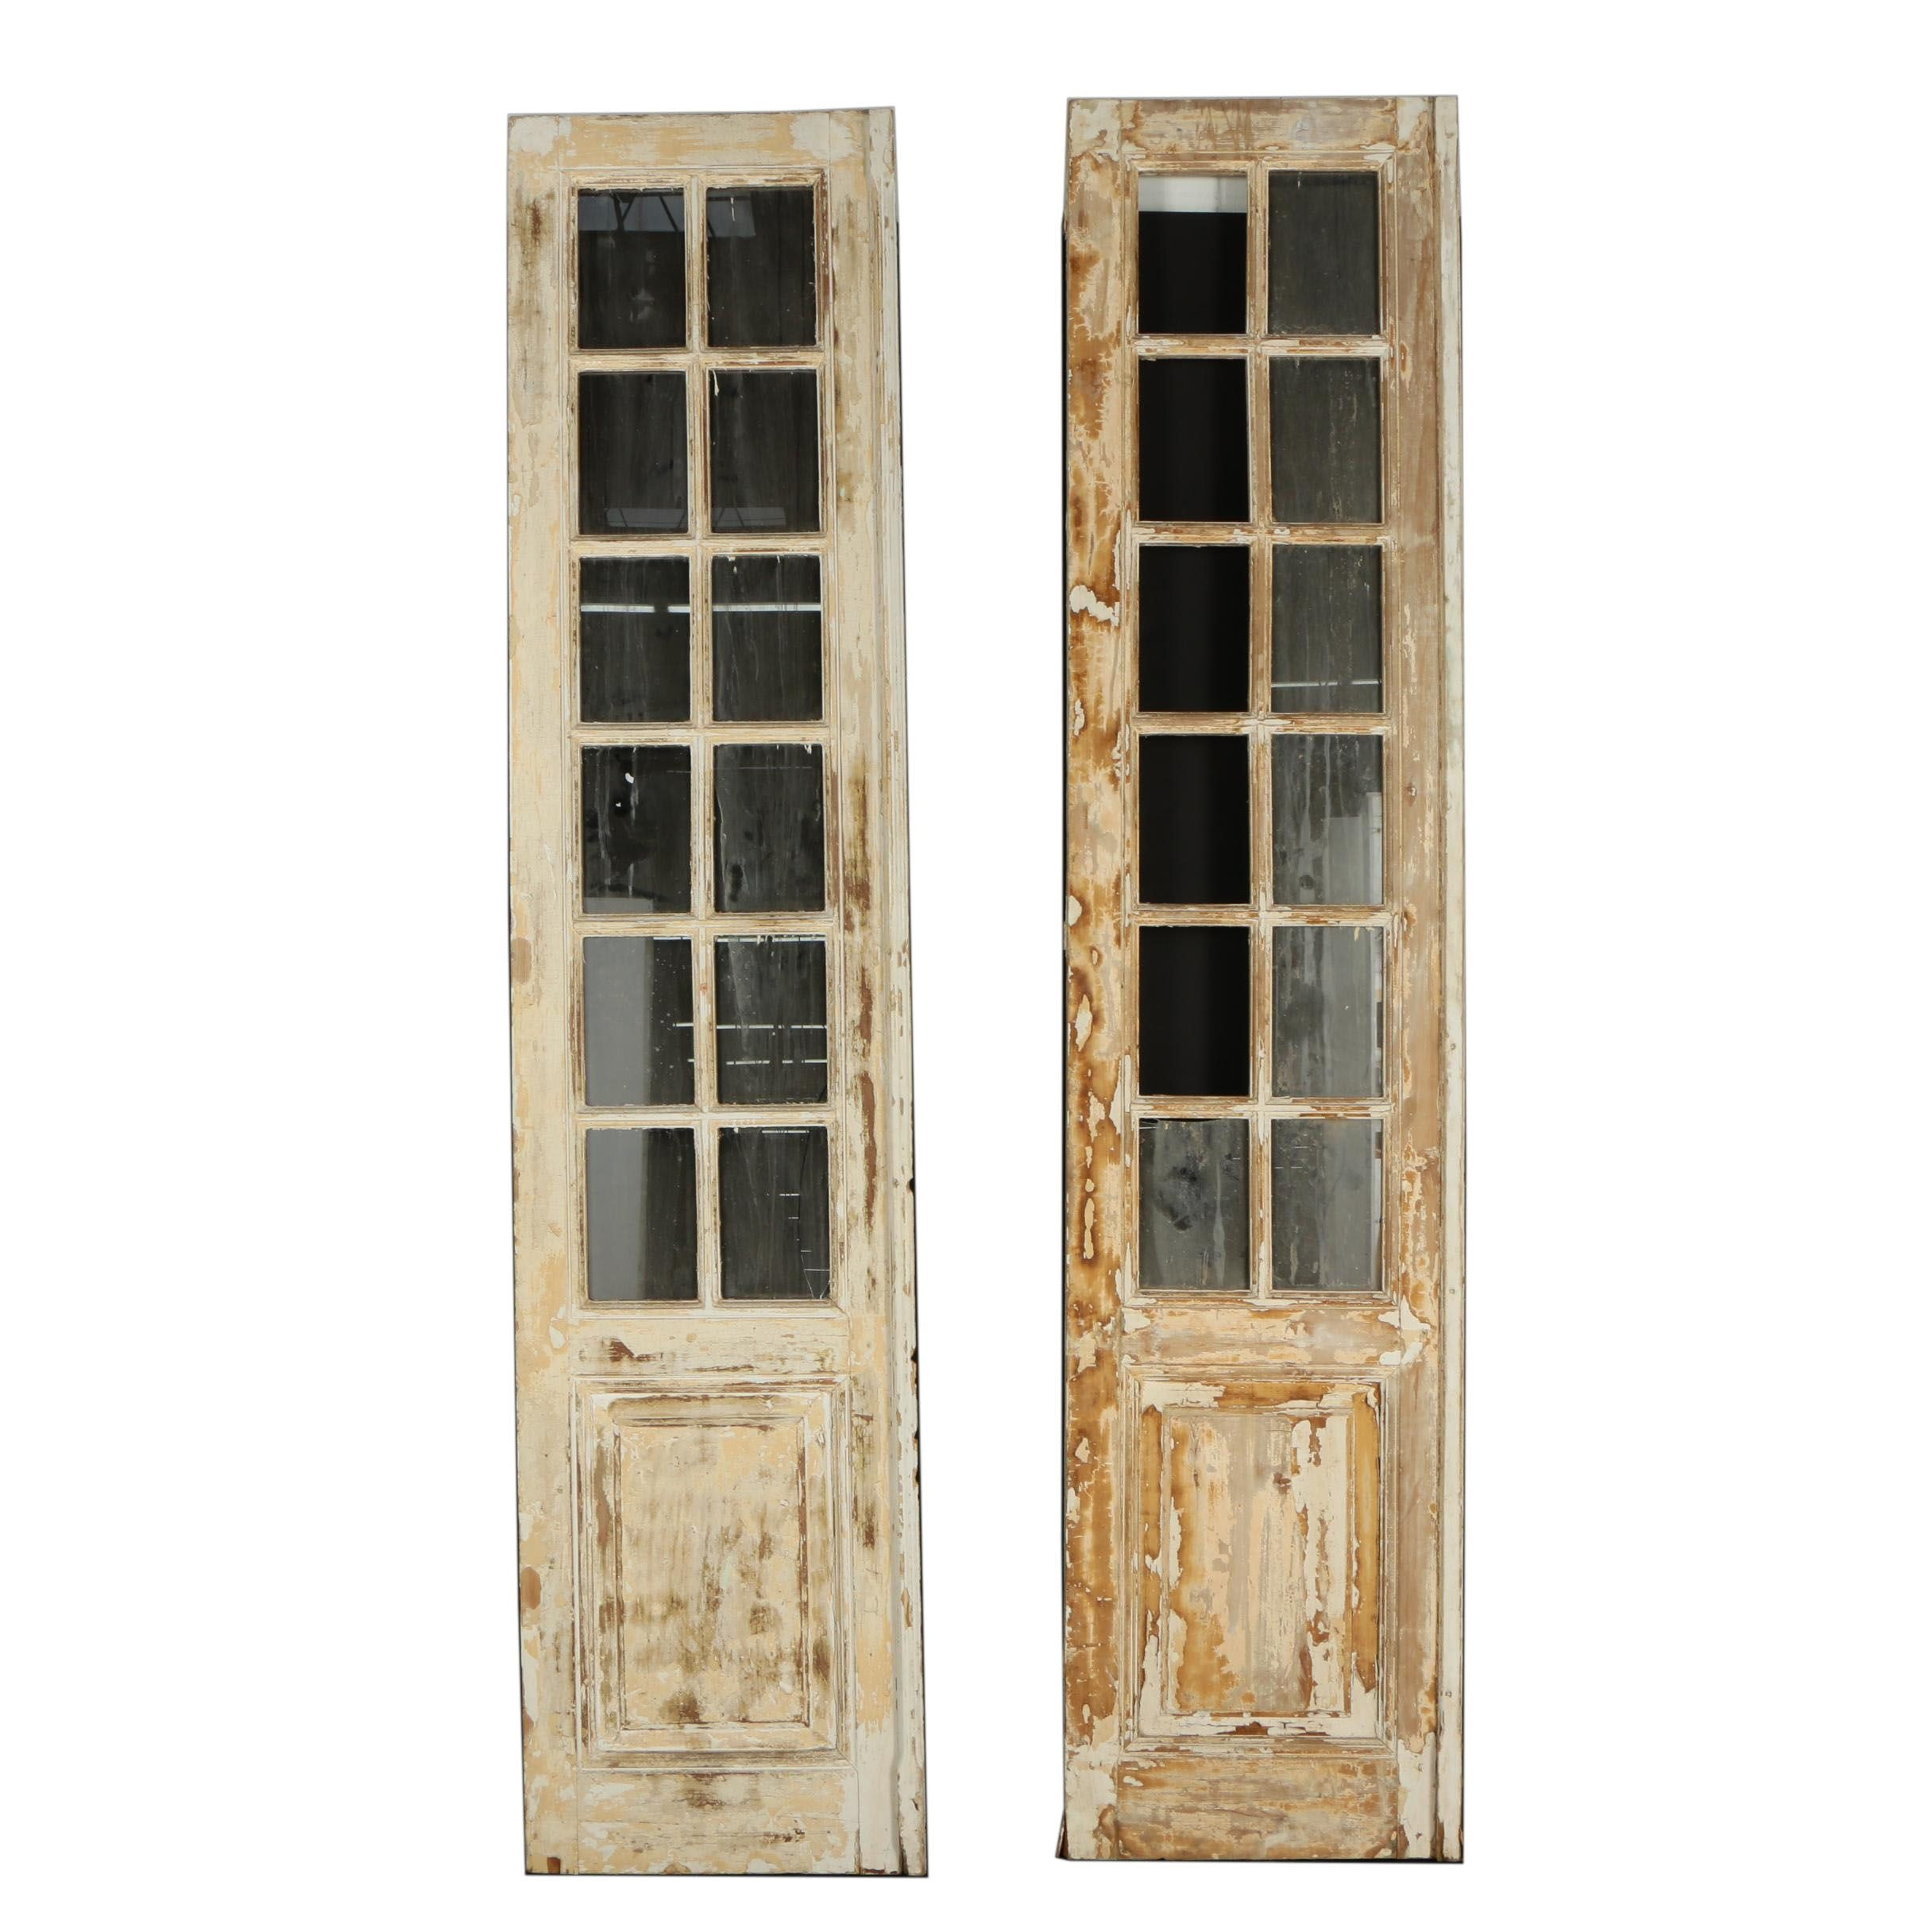 Rusticated Pine French Doors with Mirrored Panes